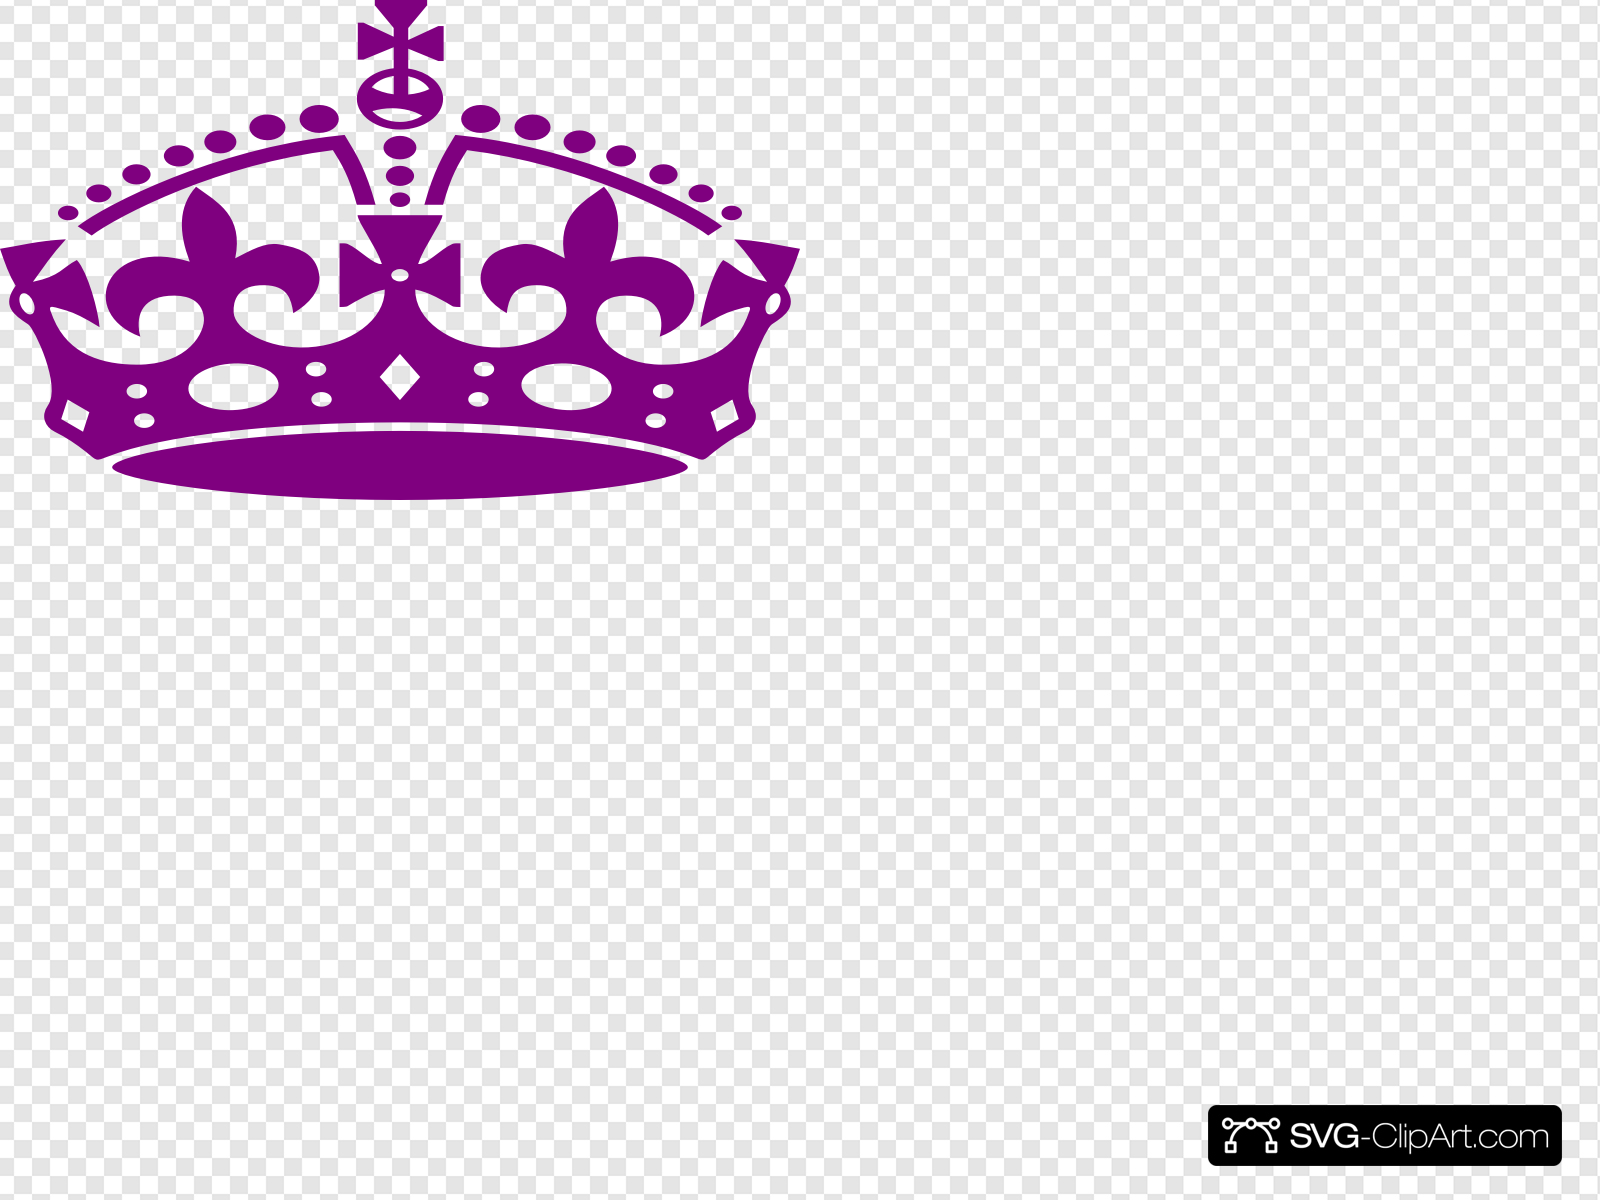 Jubilee Crown Purple Clip art, Icon and SVG.